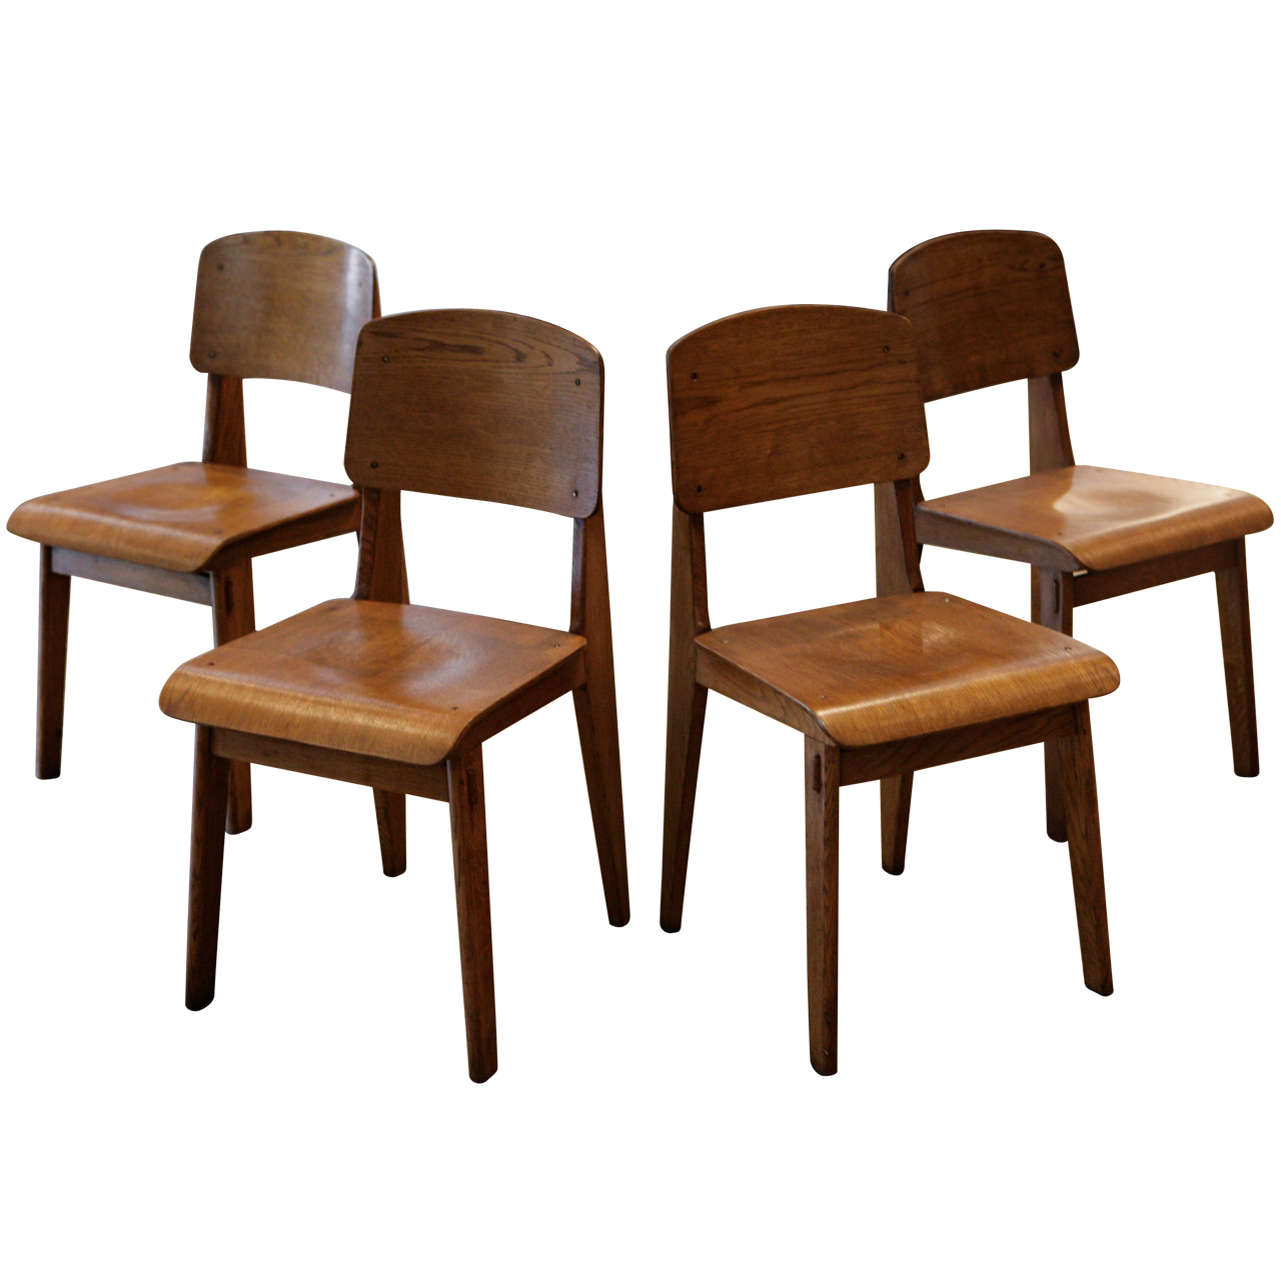 Jean prouve set of 4 39 chaise tout en bois 39 chairs ca for Chaise bois solde